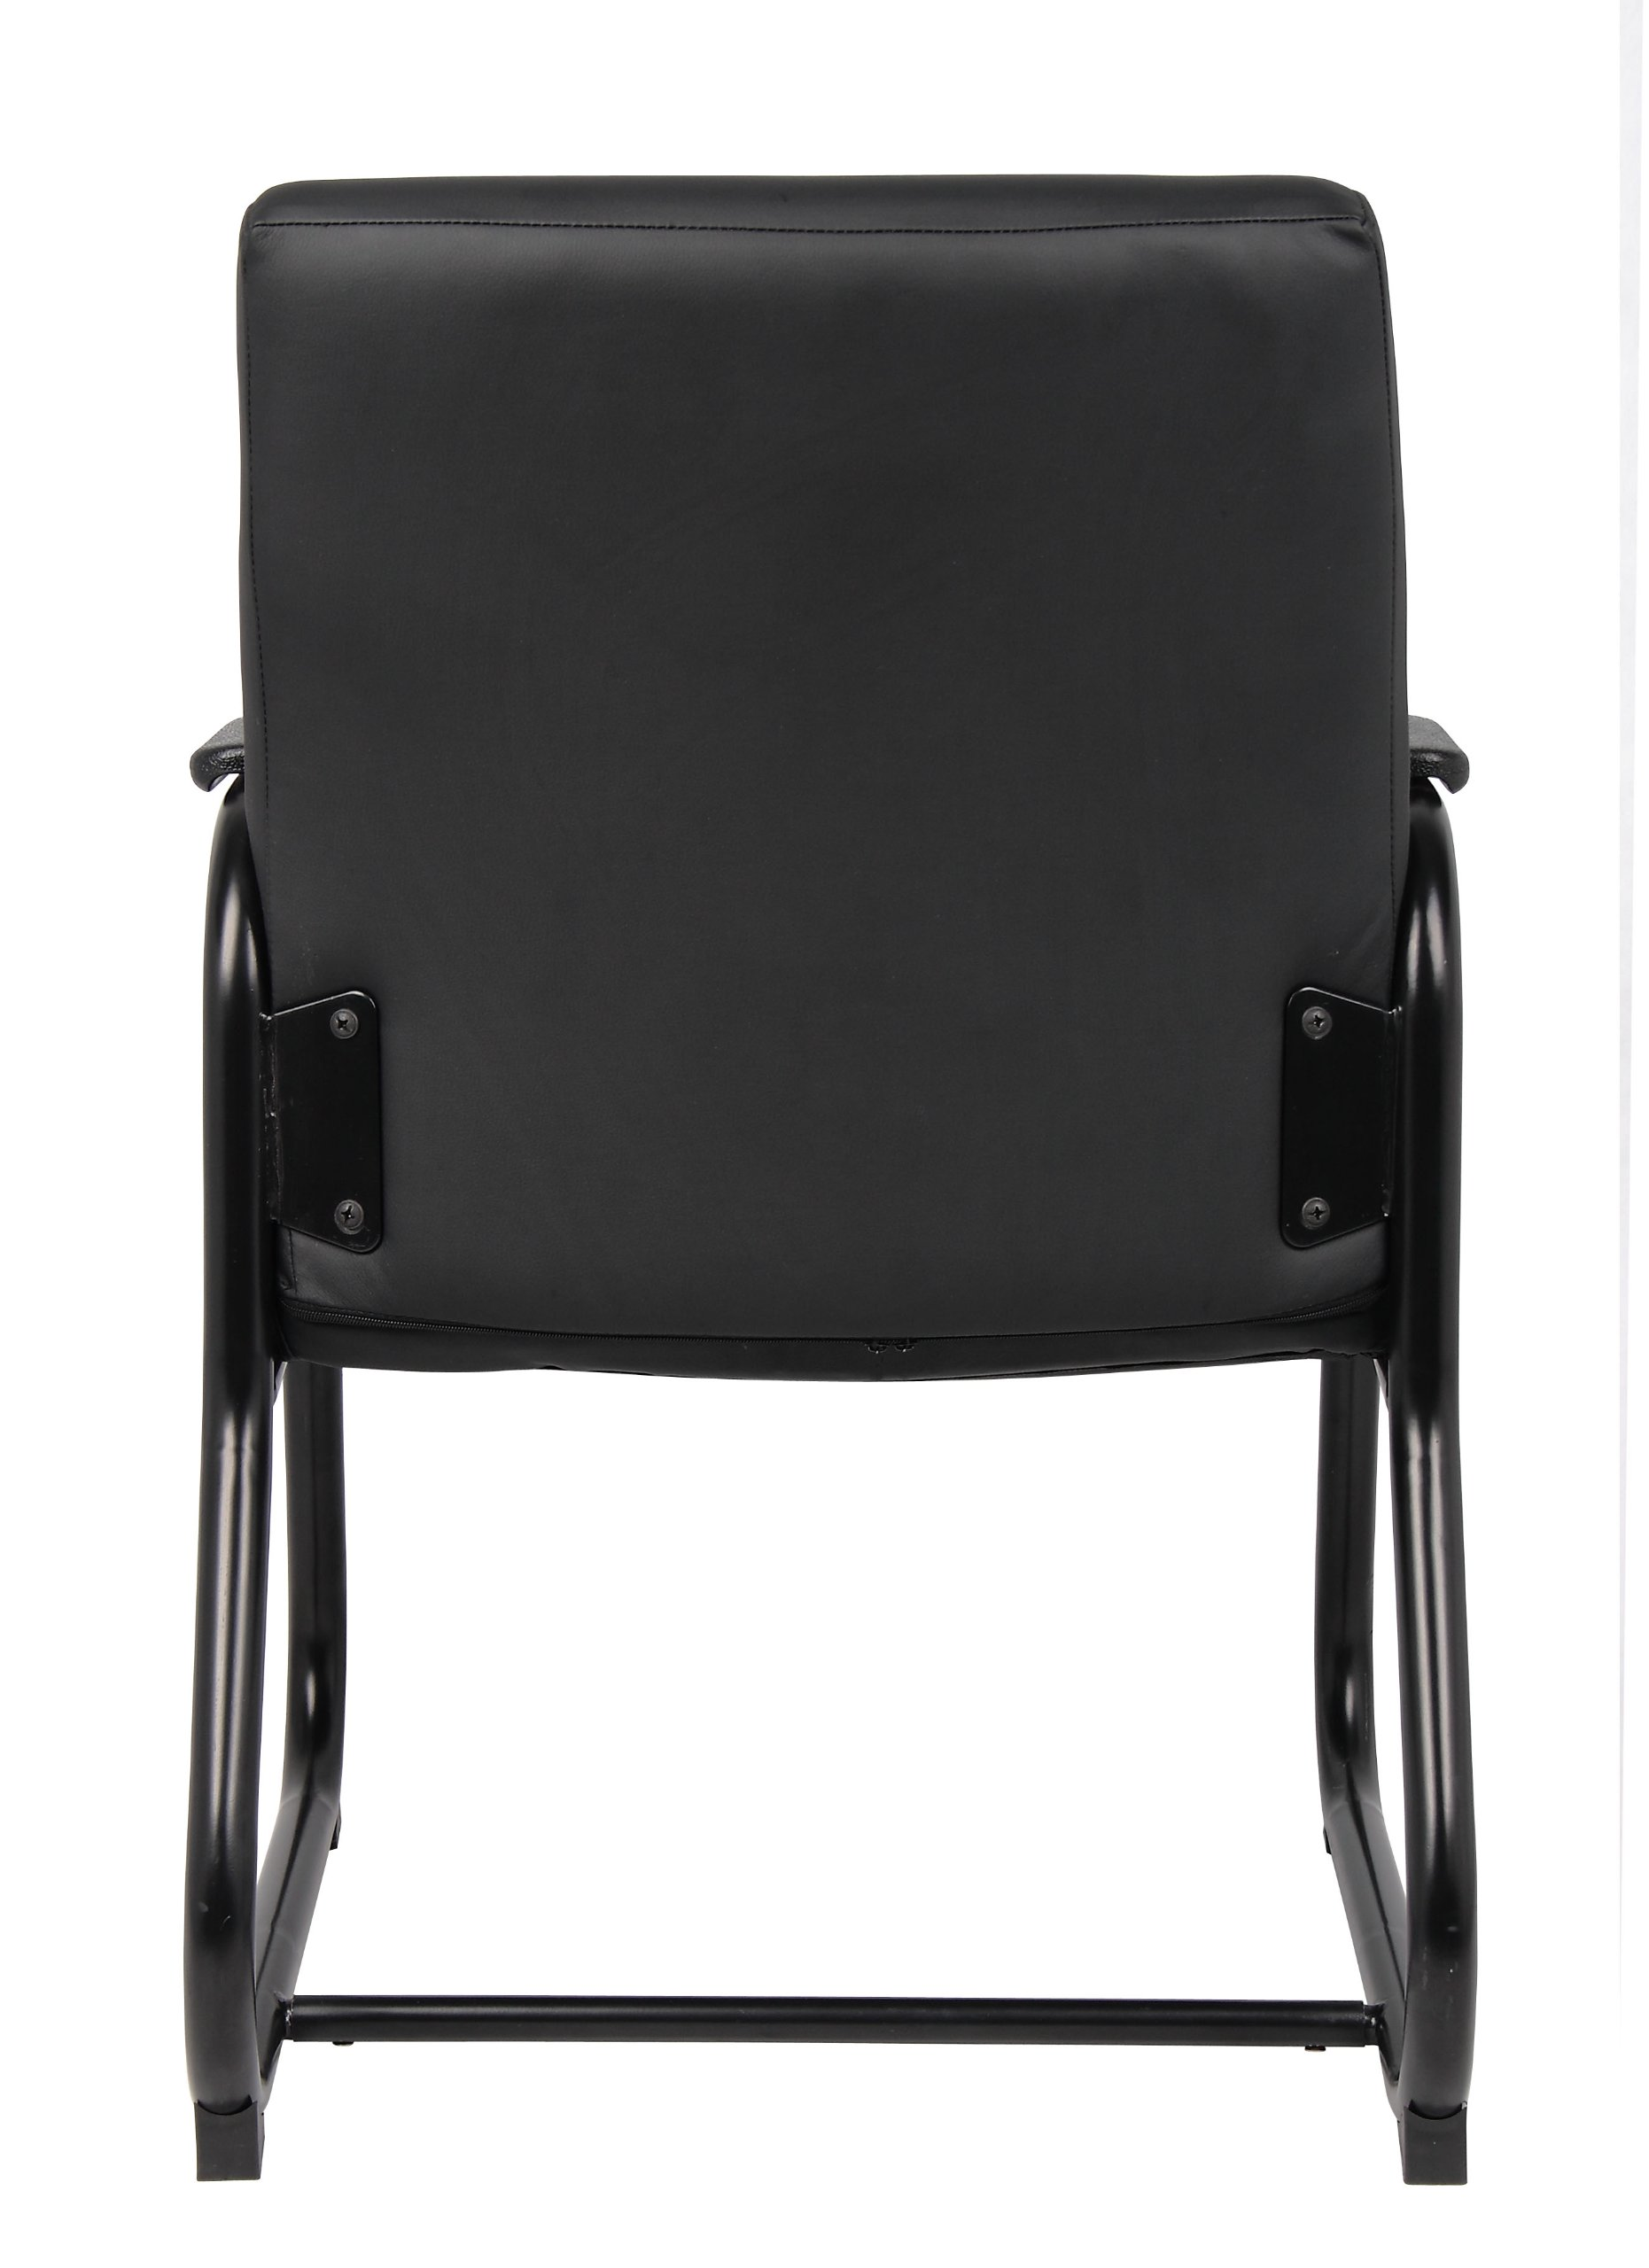 Boss Office Products B709 Heavy Duty Caressoft Guest Chair in Black by Boss Office Products (Image #2)